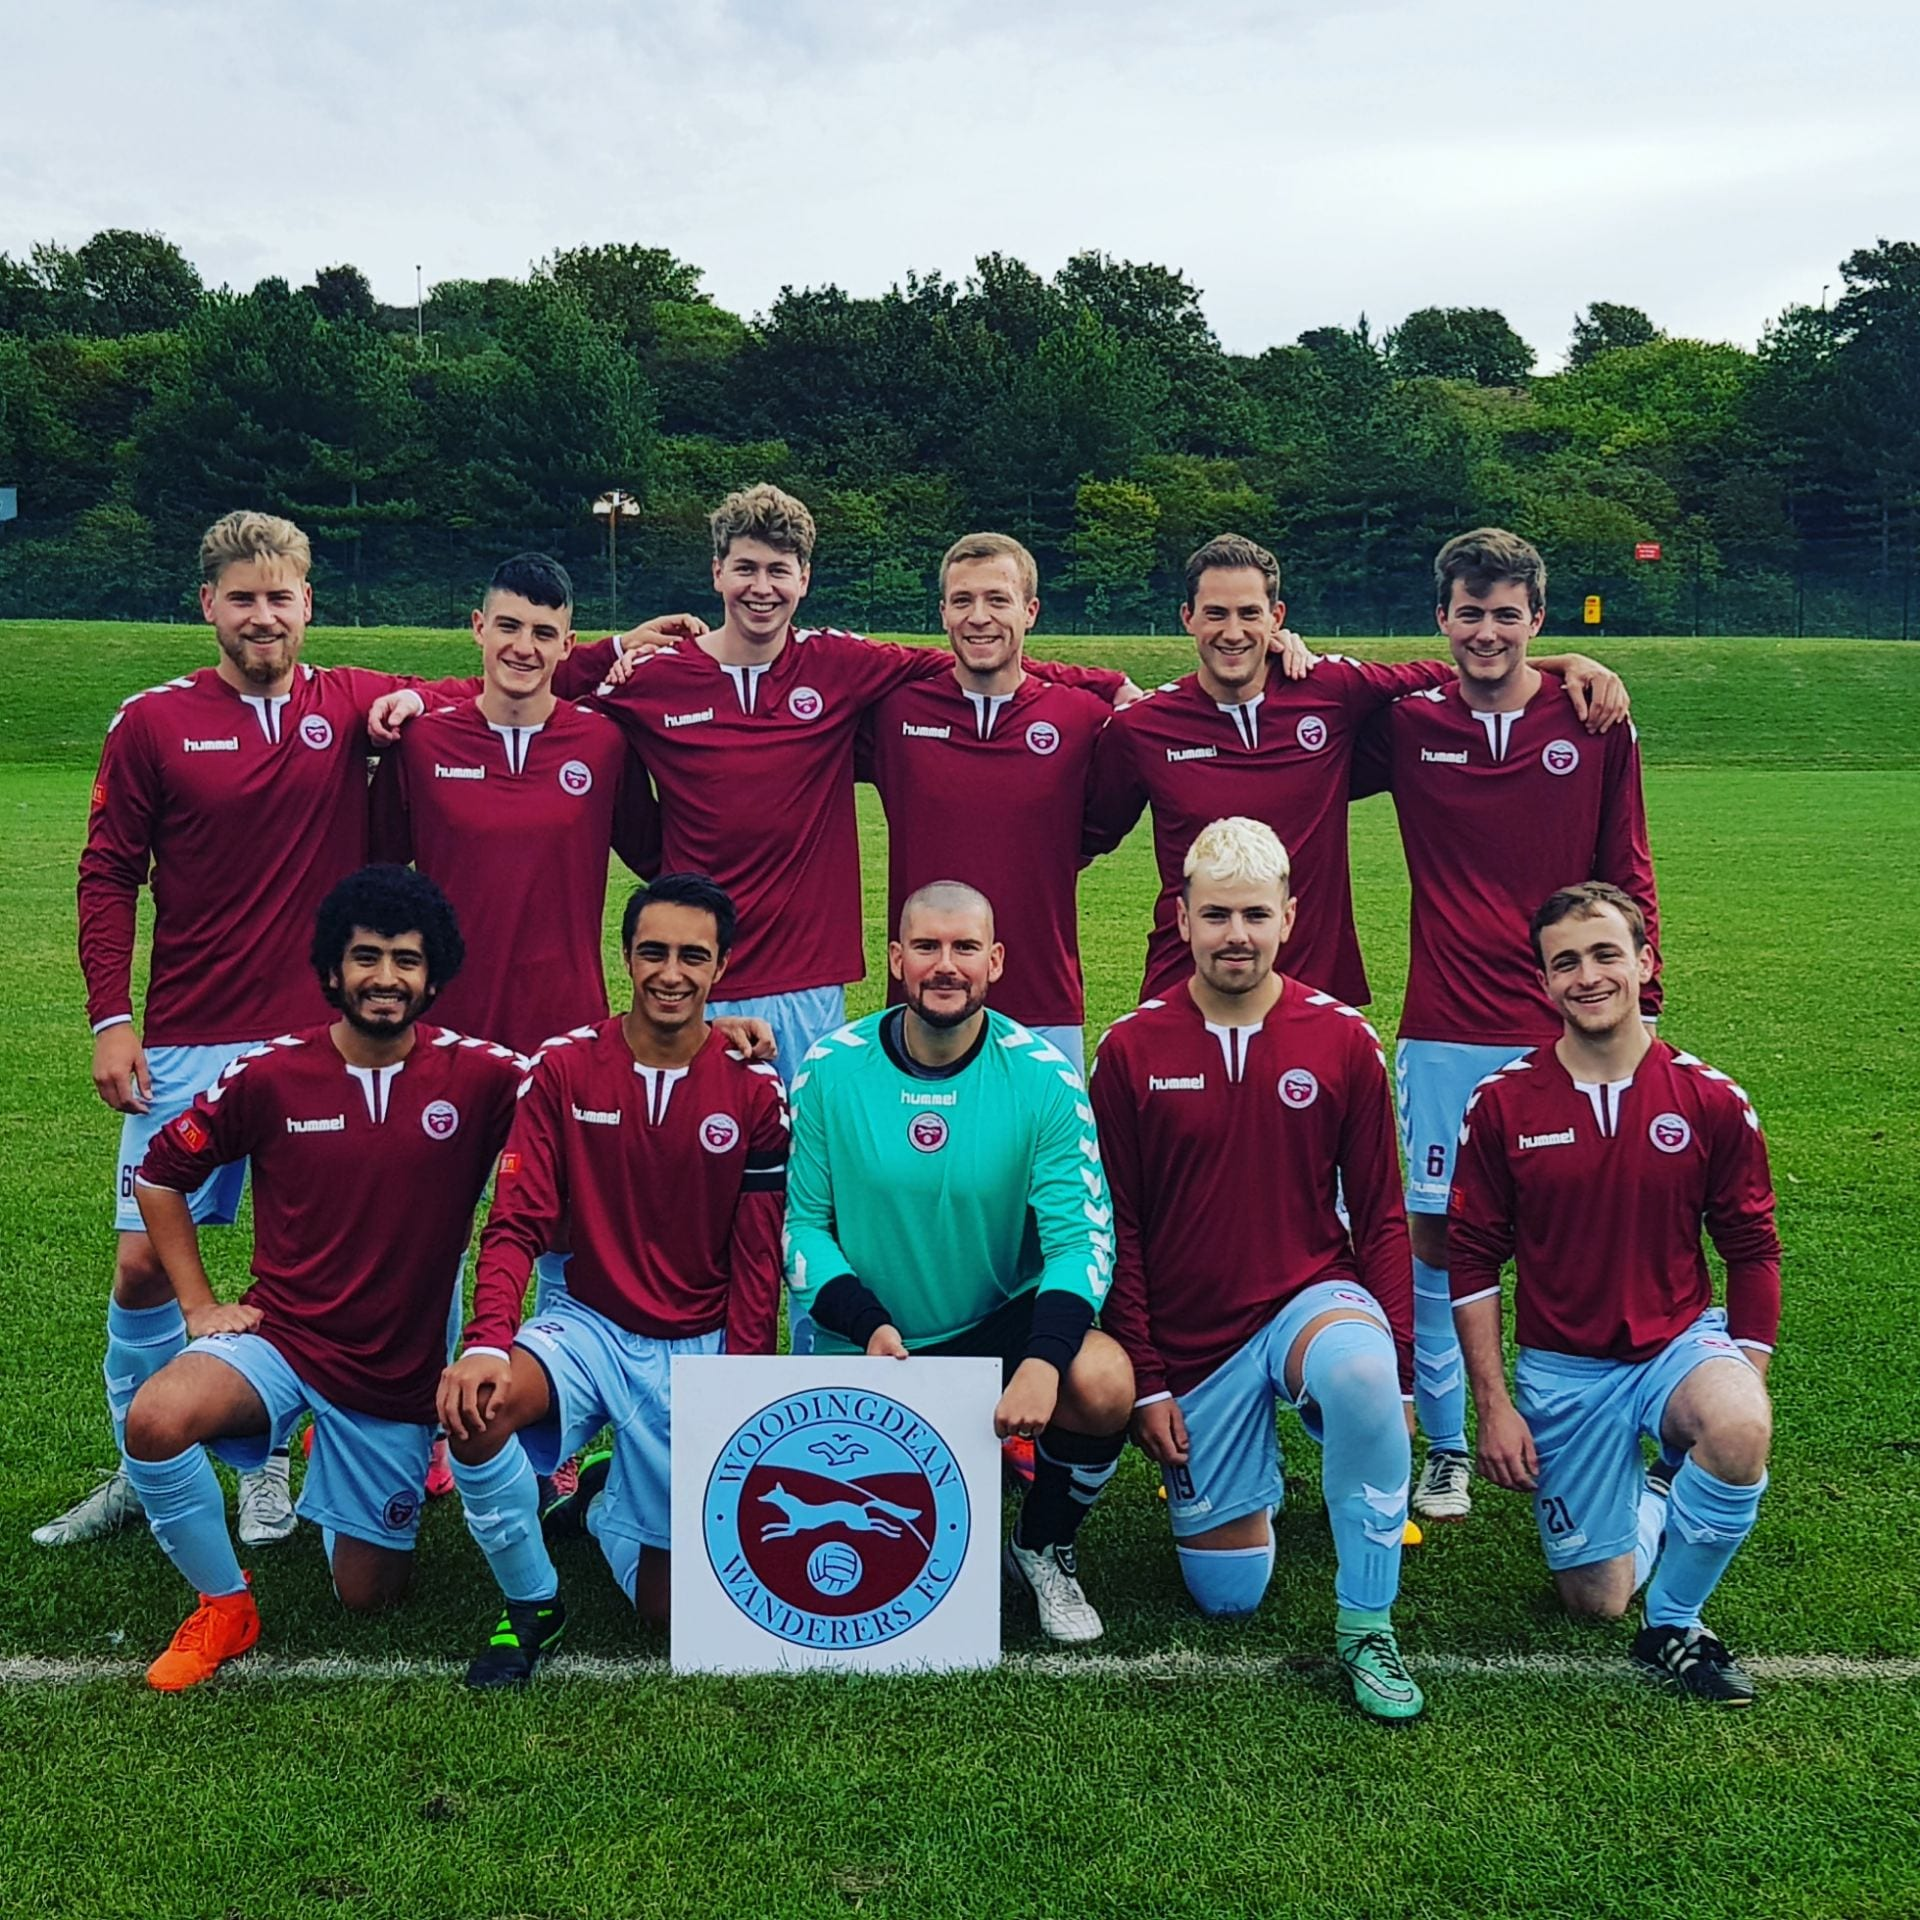 Woodingdean Wanderers Adult Team